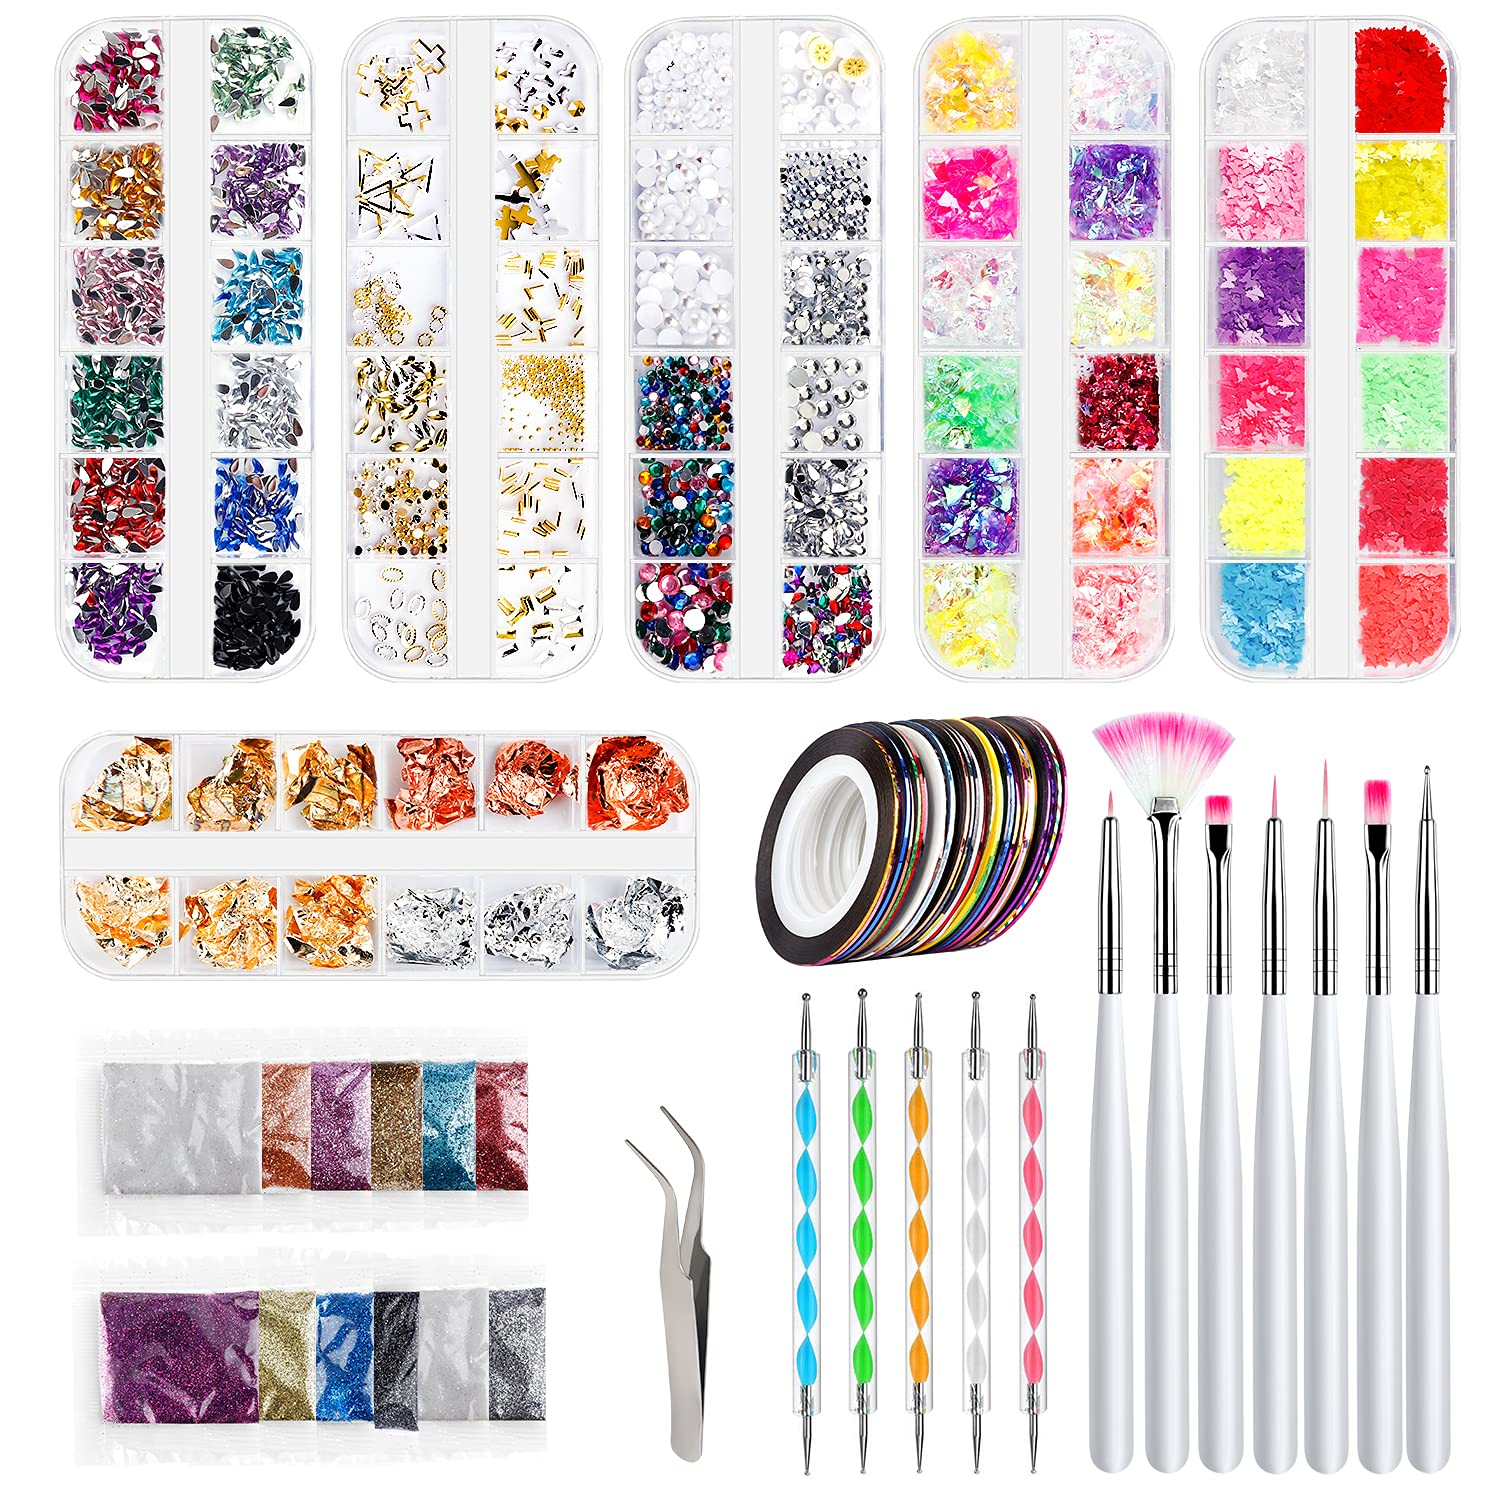 Nail Art Brush shopping and Accessories Product Wi Kit Decoration Tools